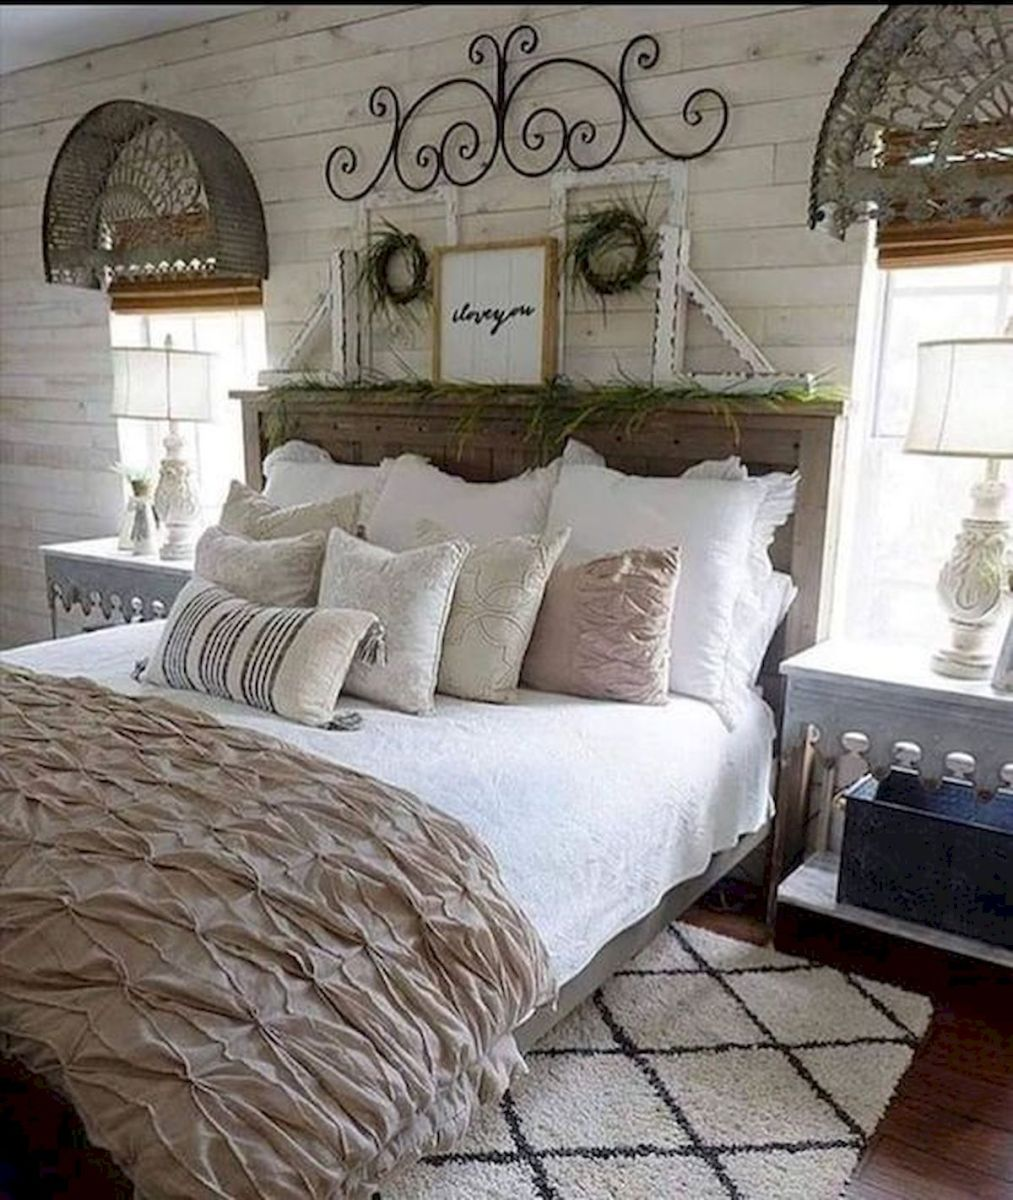 47 Most Popular Bedding for Farmhouse Bedroom Design Ideas and Decor (10)